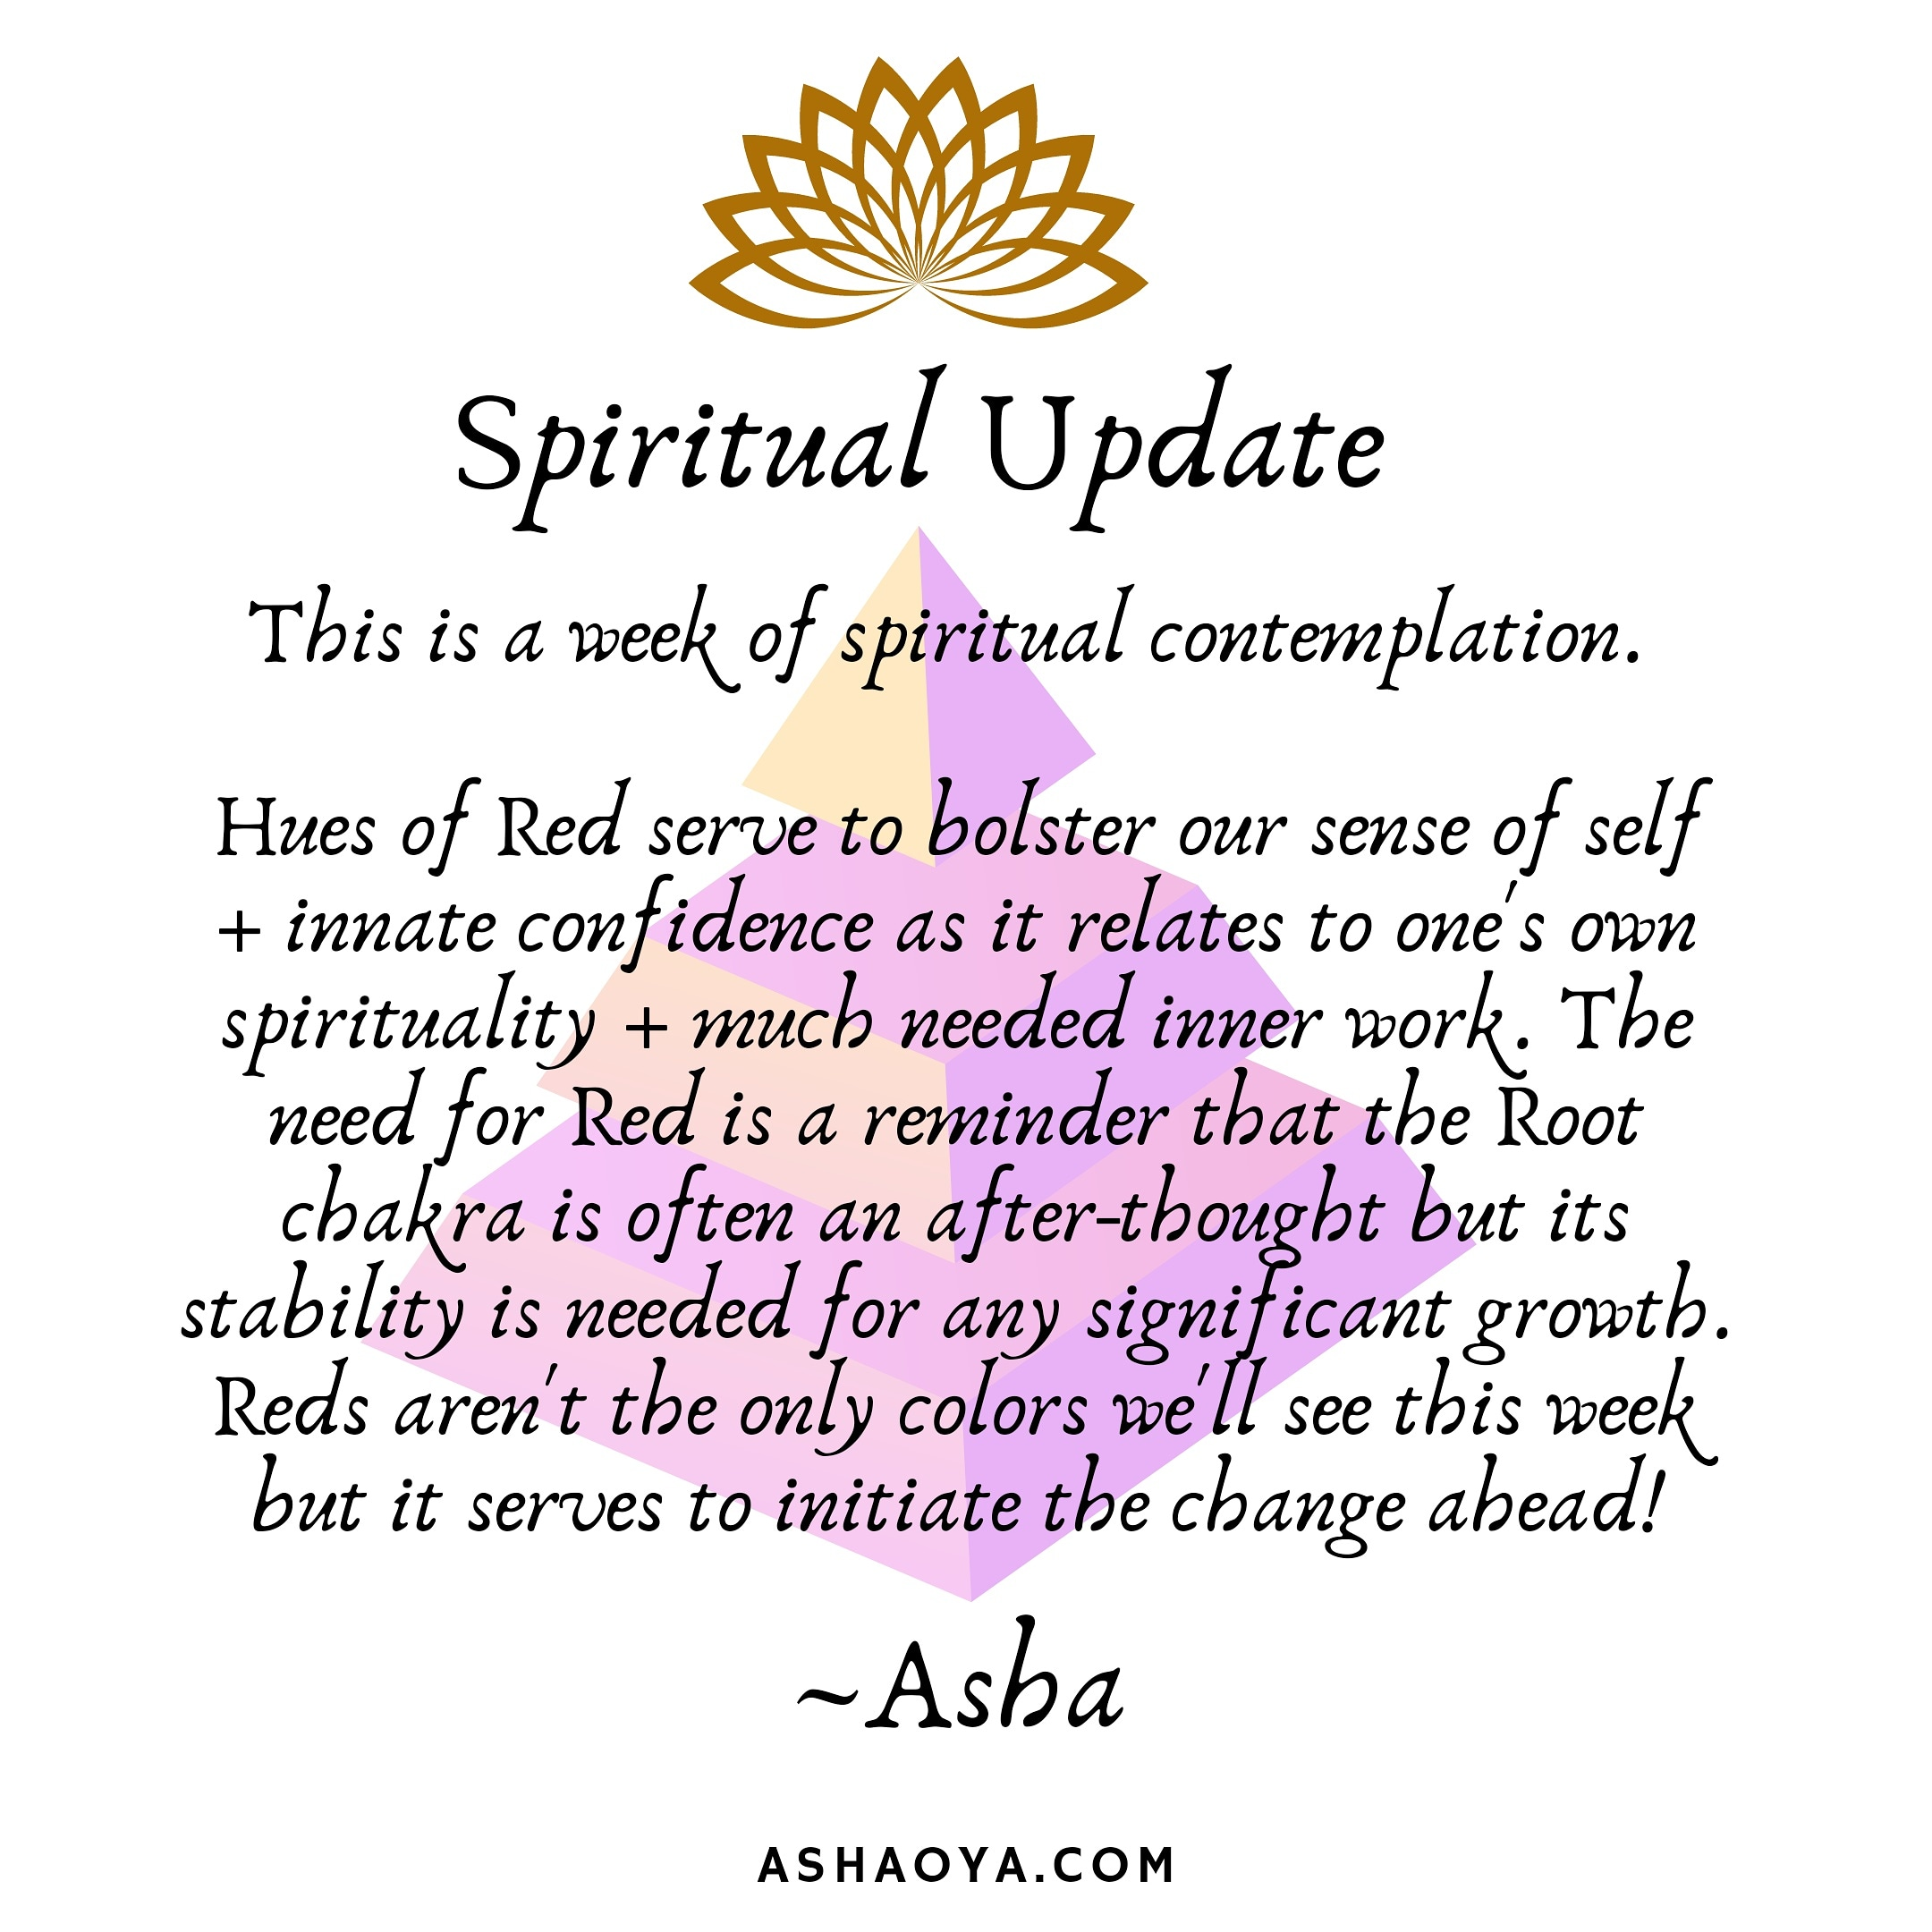 Spiritual Update: Spiritual Contemplation